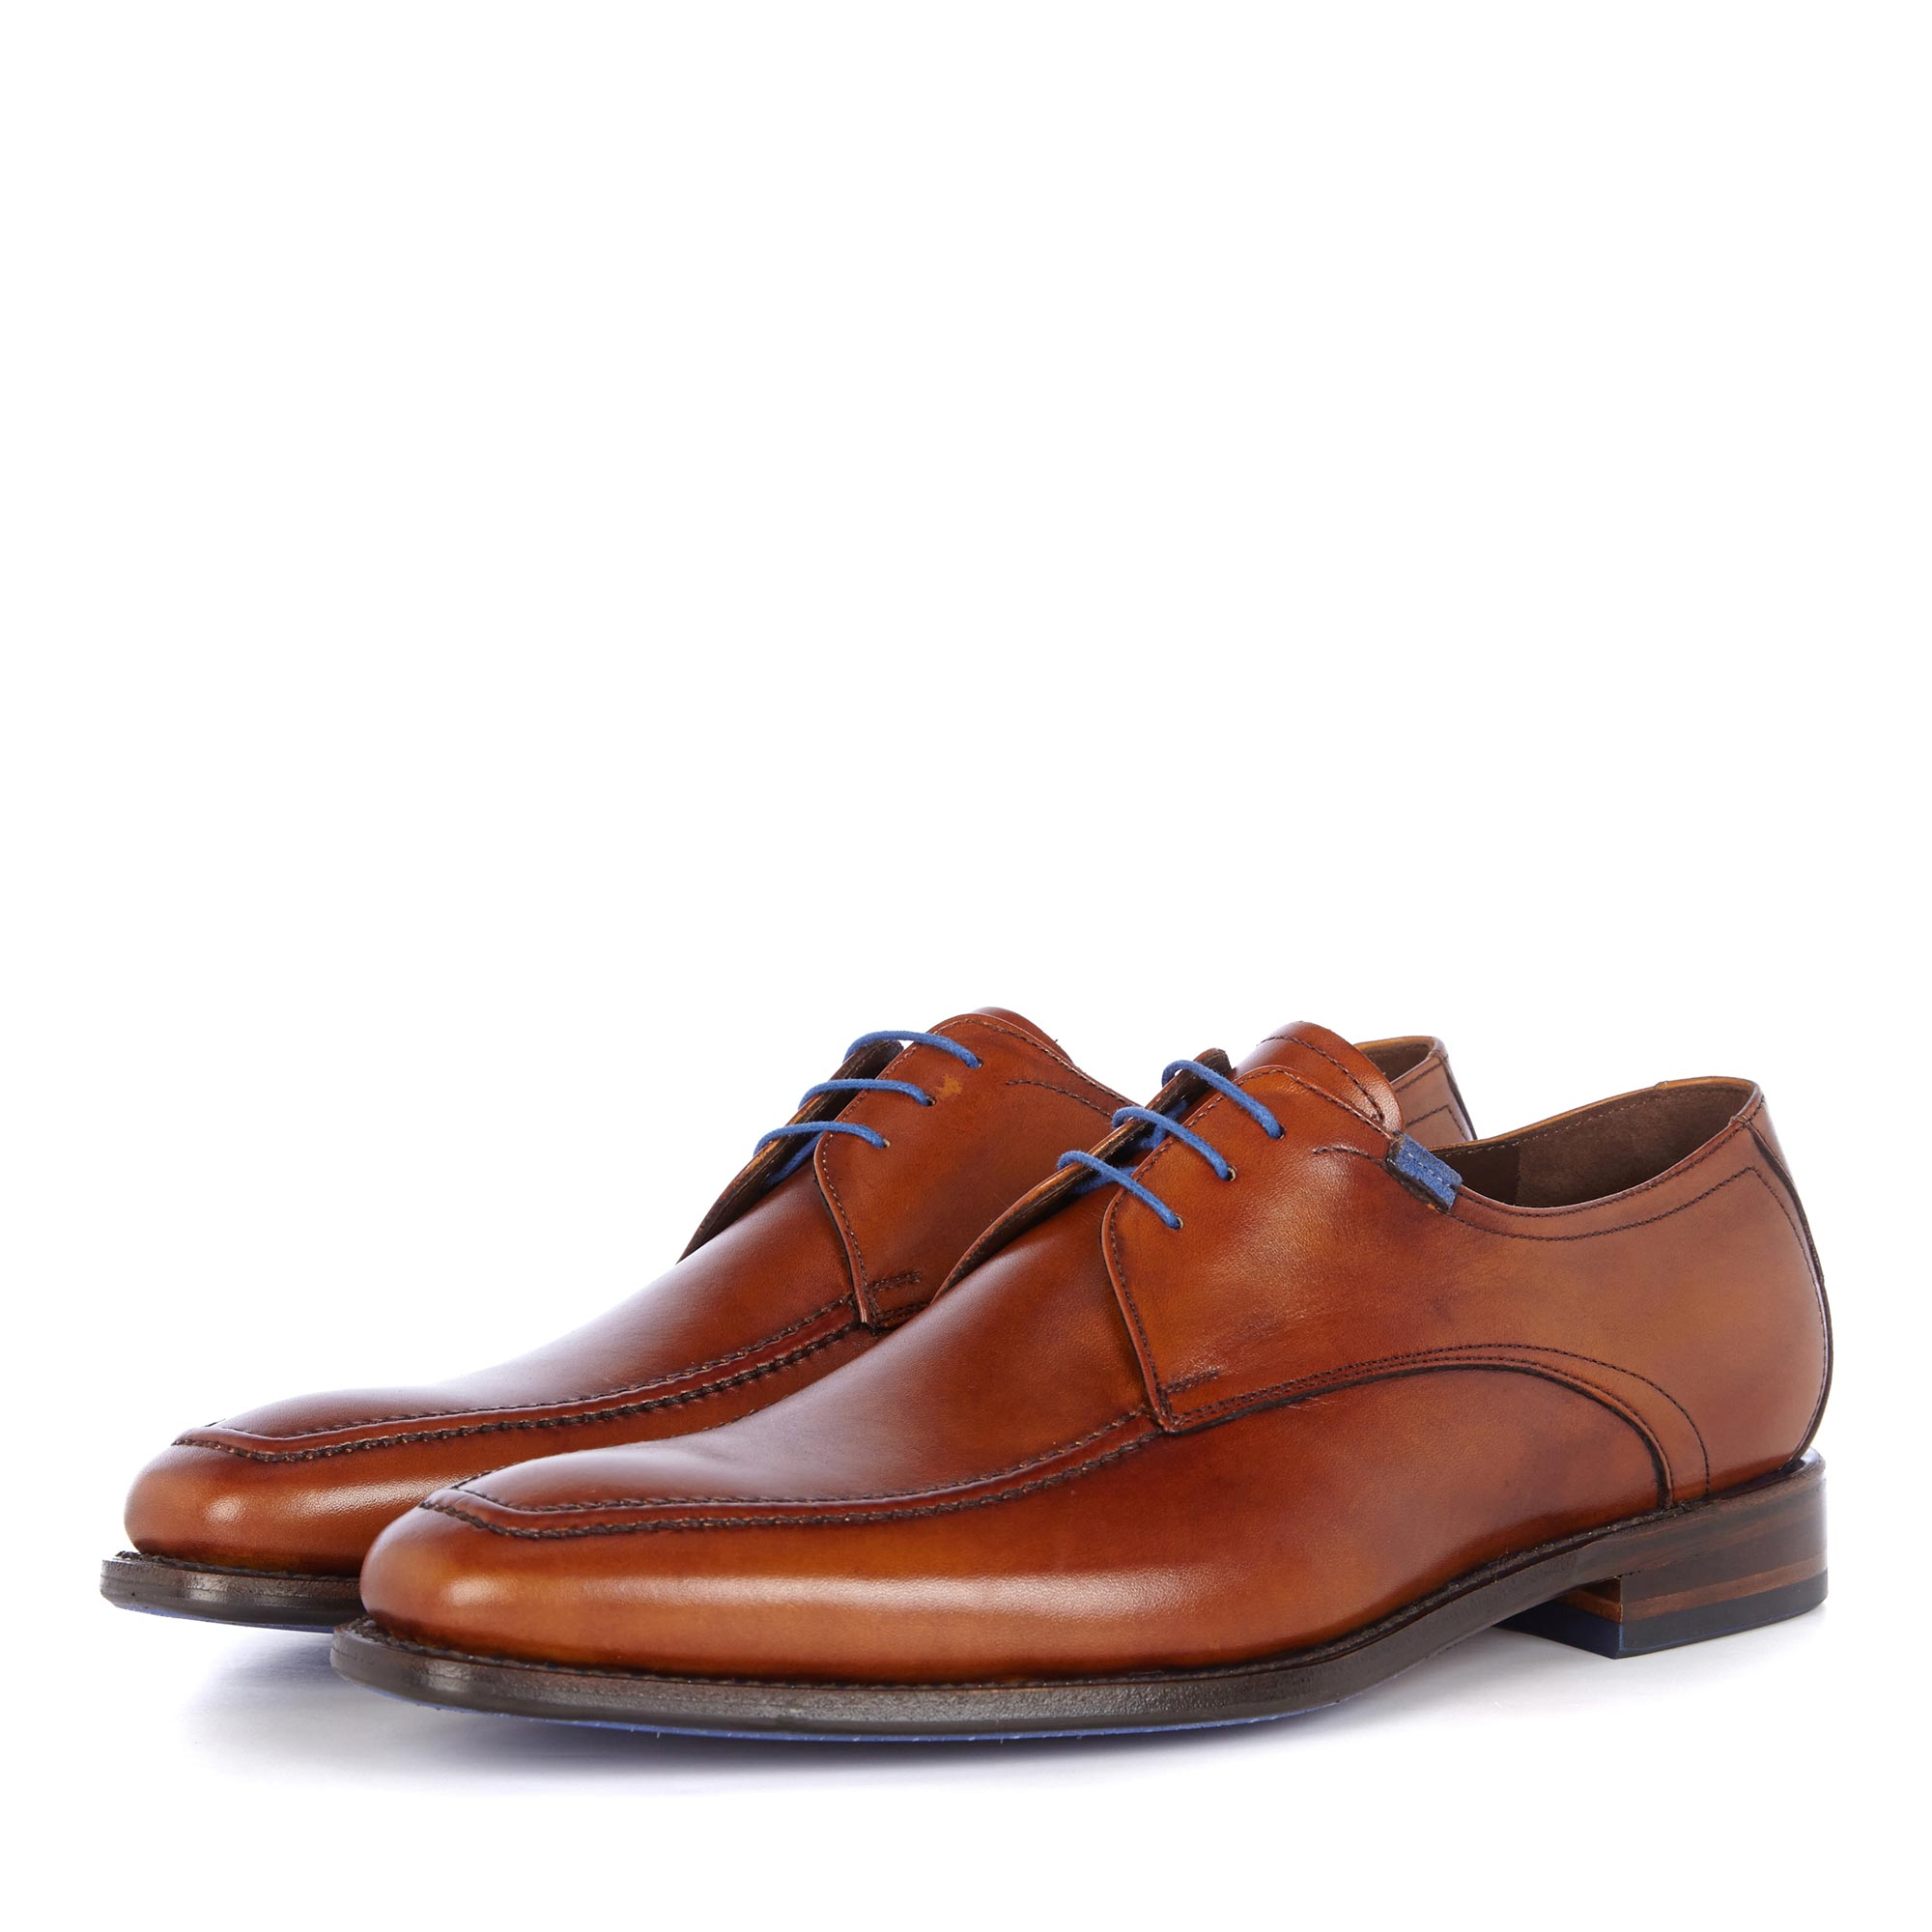 13370/00 - Cognac-coloured leather lace shoe